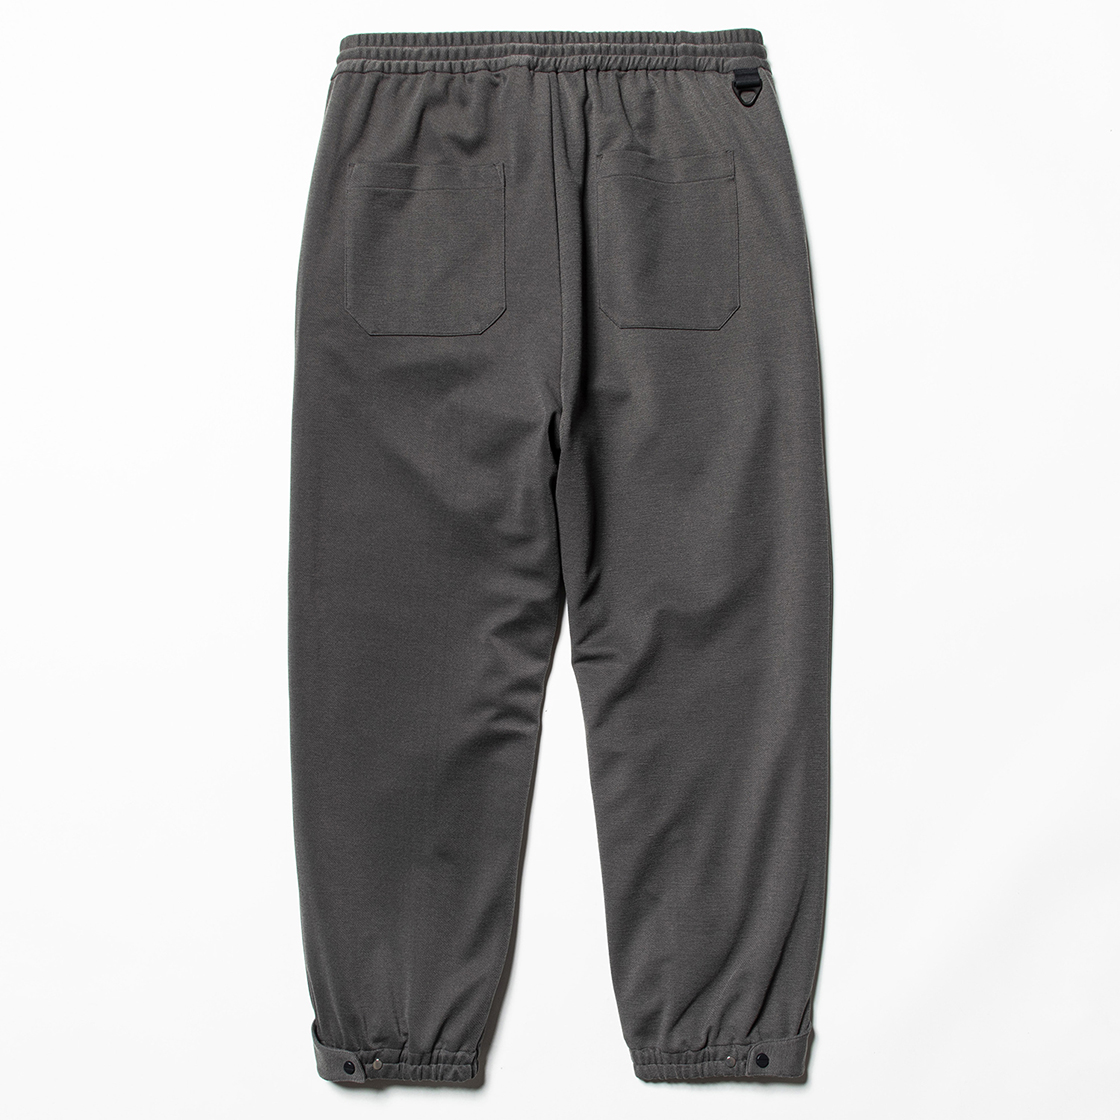 Twill Jersey Easy PT Charcoal